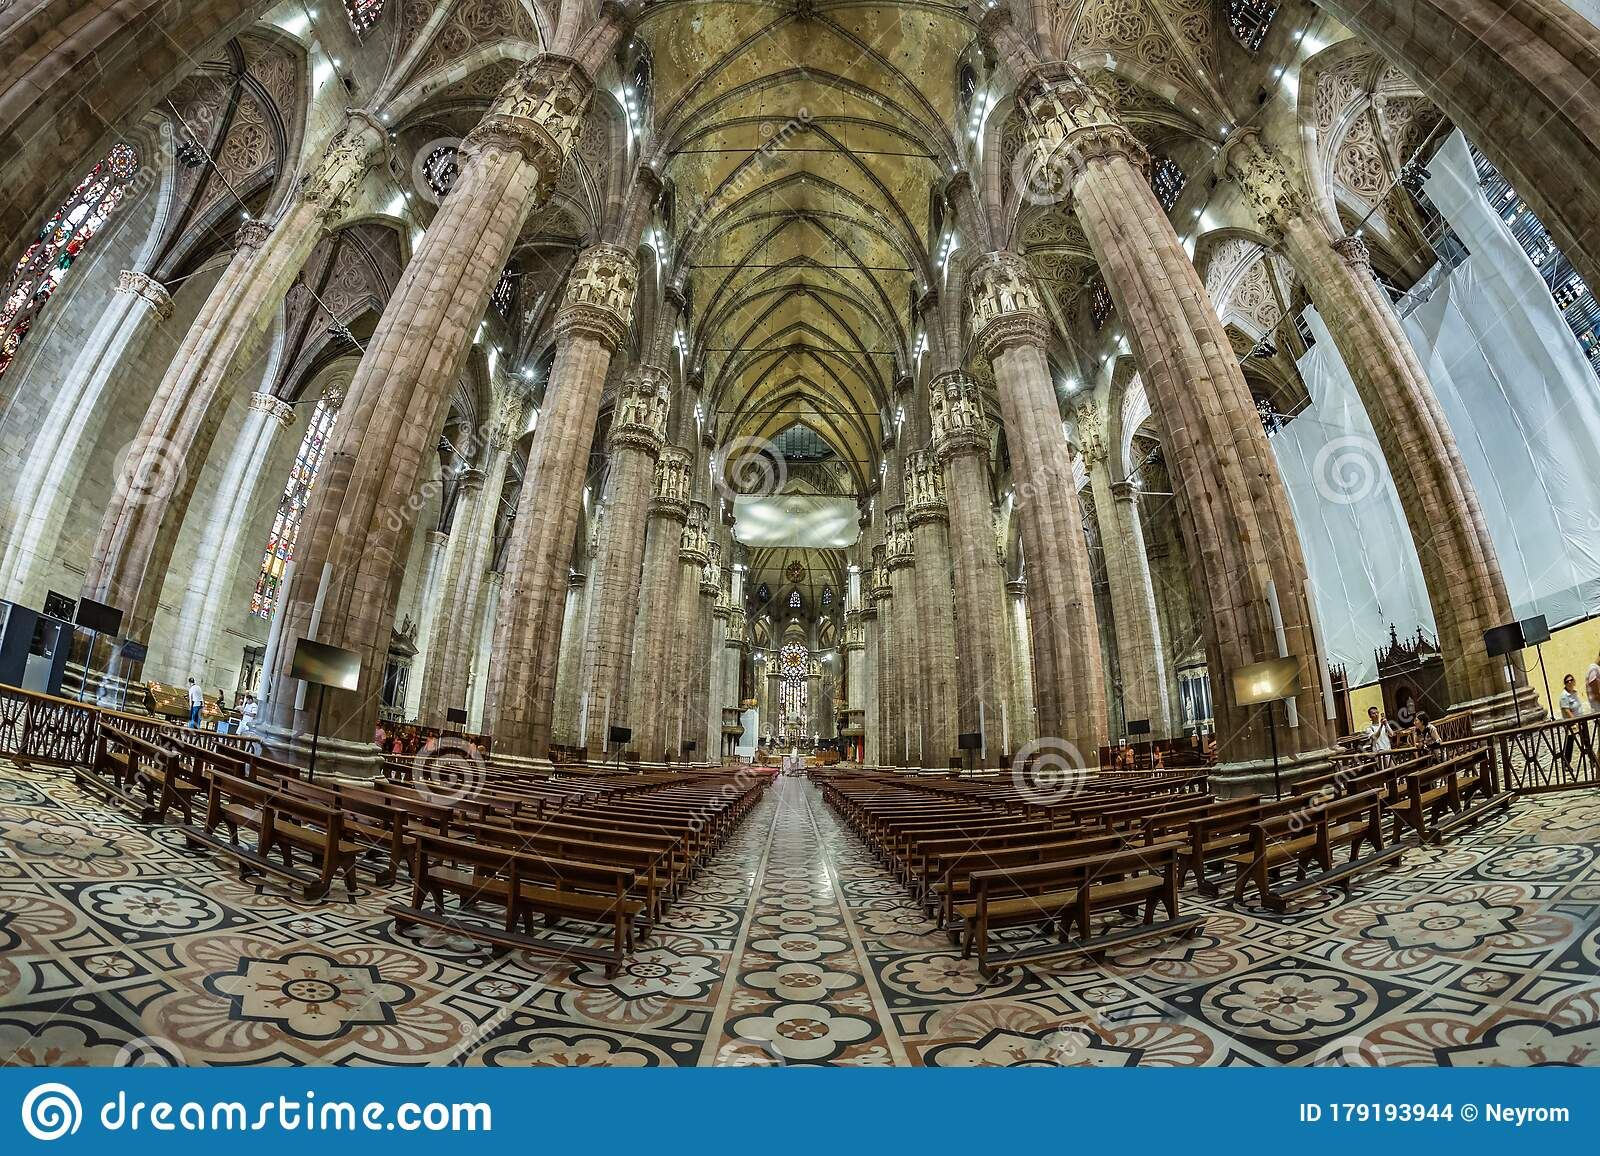 Milan Italy Aug 1 2019 Interior Of The Famous Cathedral Duomo Di Milano On Piazza In Milan Italy Fish Eye Lens Shot Editorial Stock Image Image Of Landmark Holy 179193944